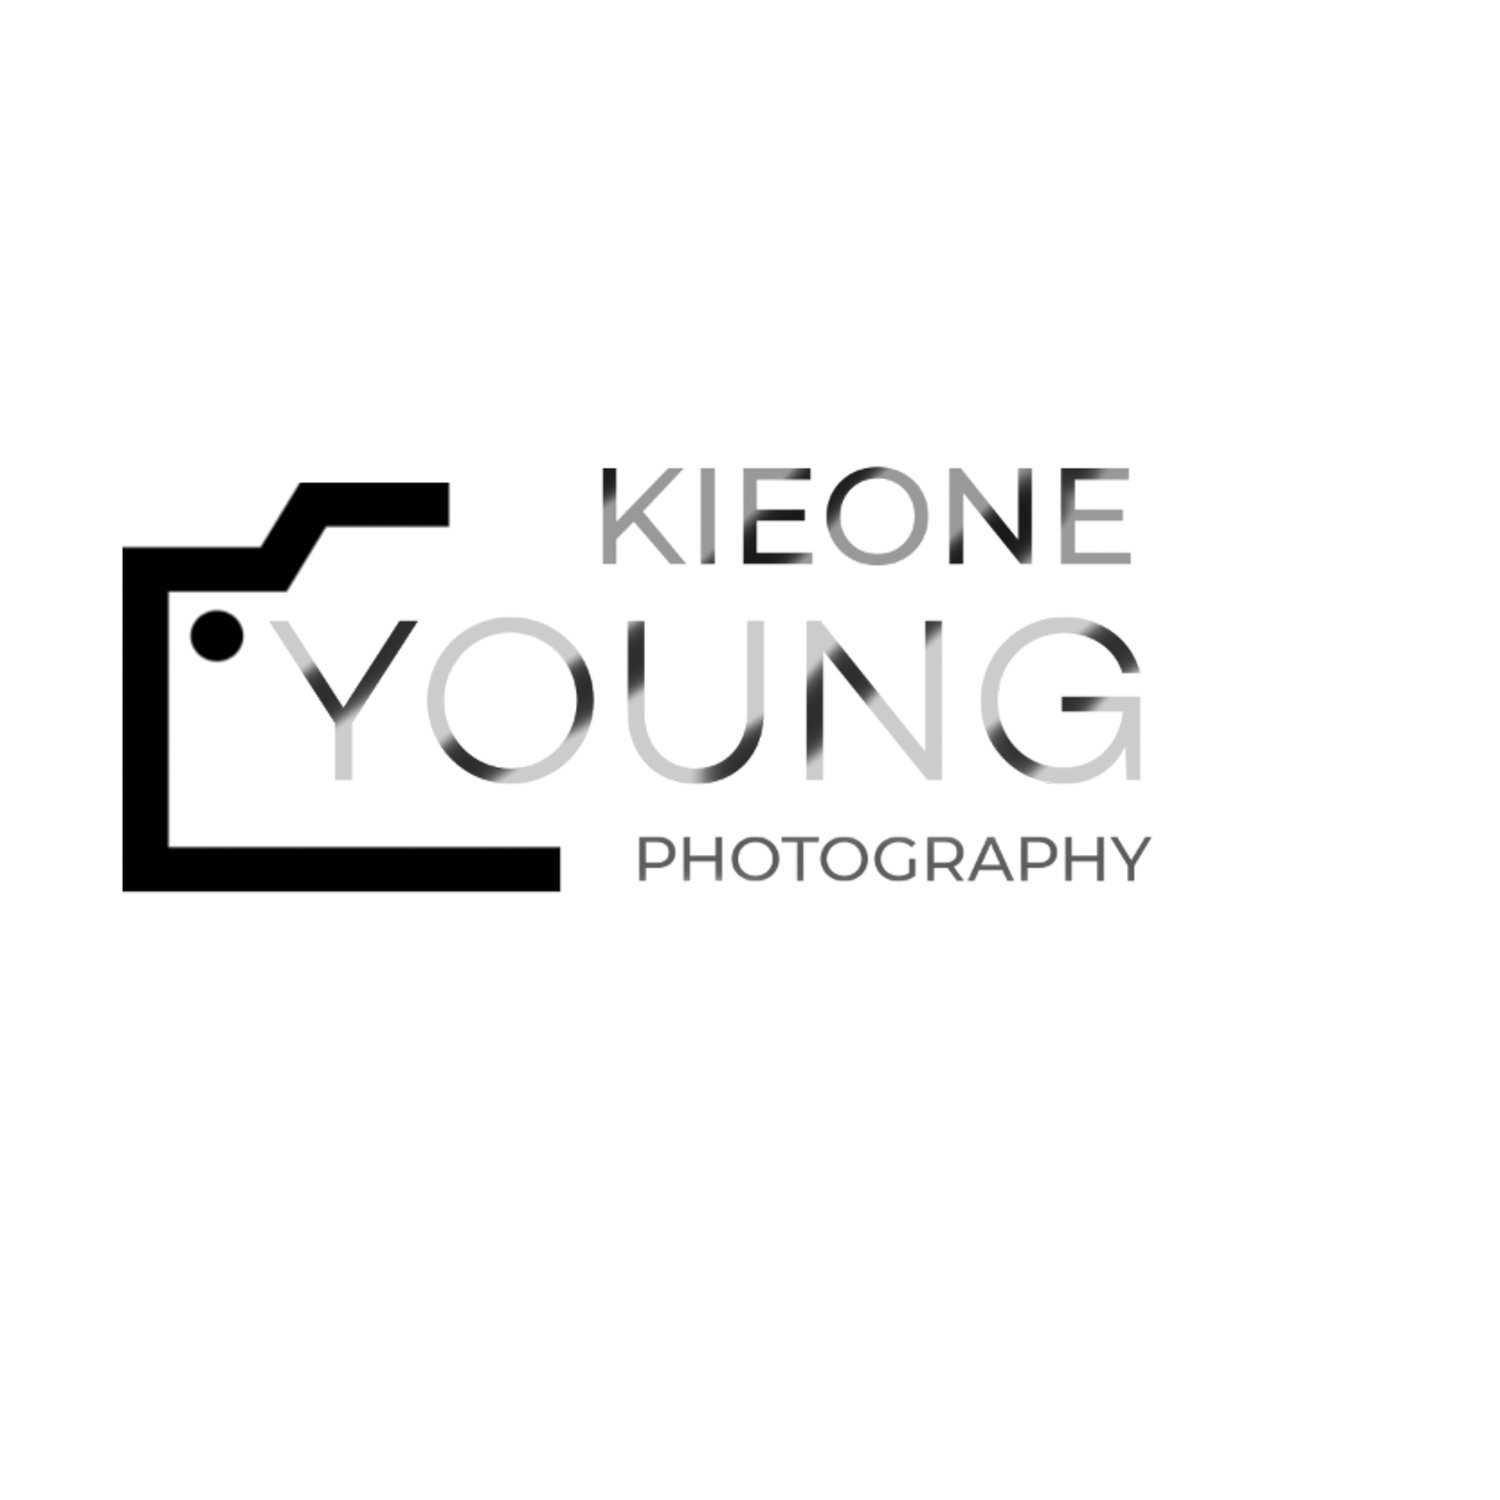 Kieone Young Photography